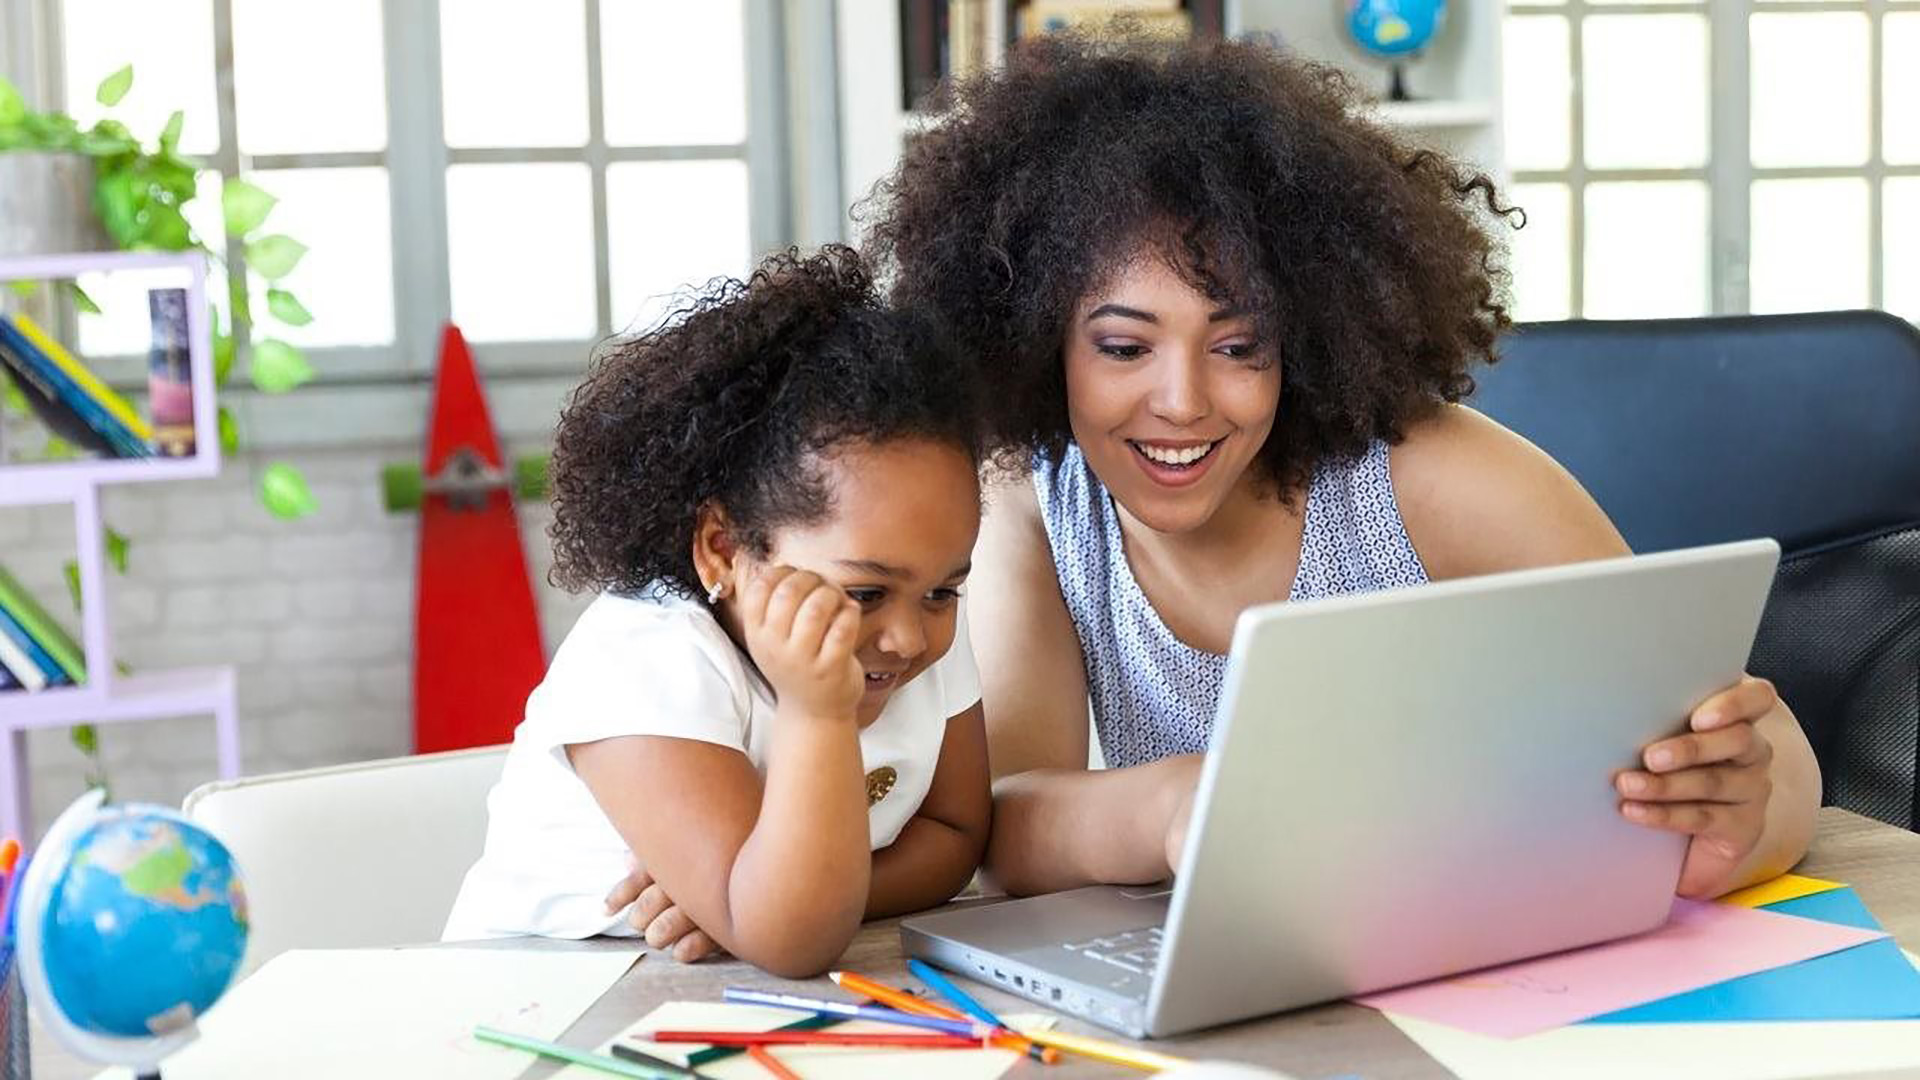 A woman using a laptop with a child